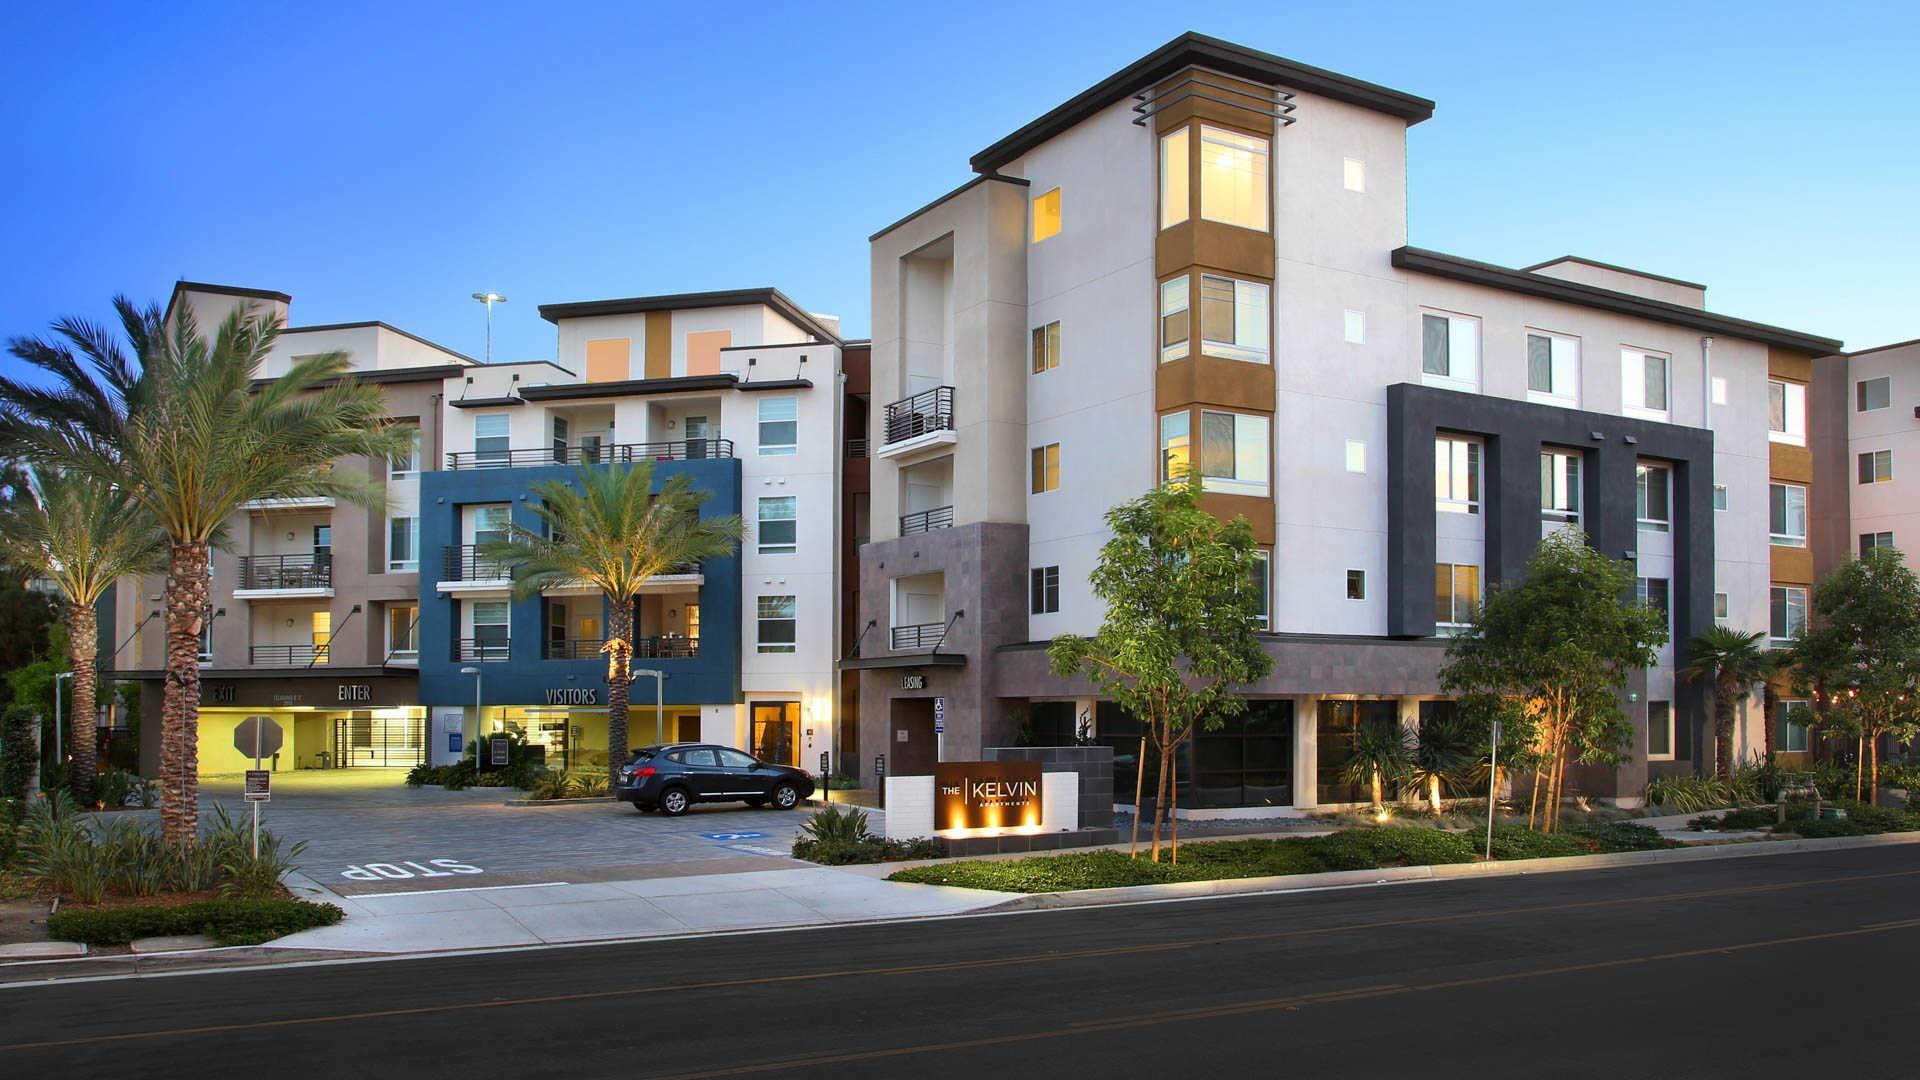 New Apartments For Rent In Irvine Ca